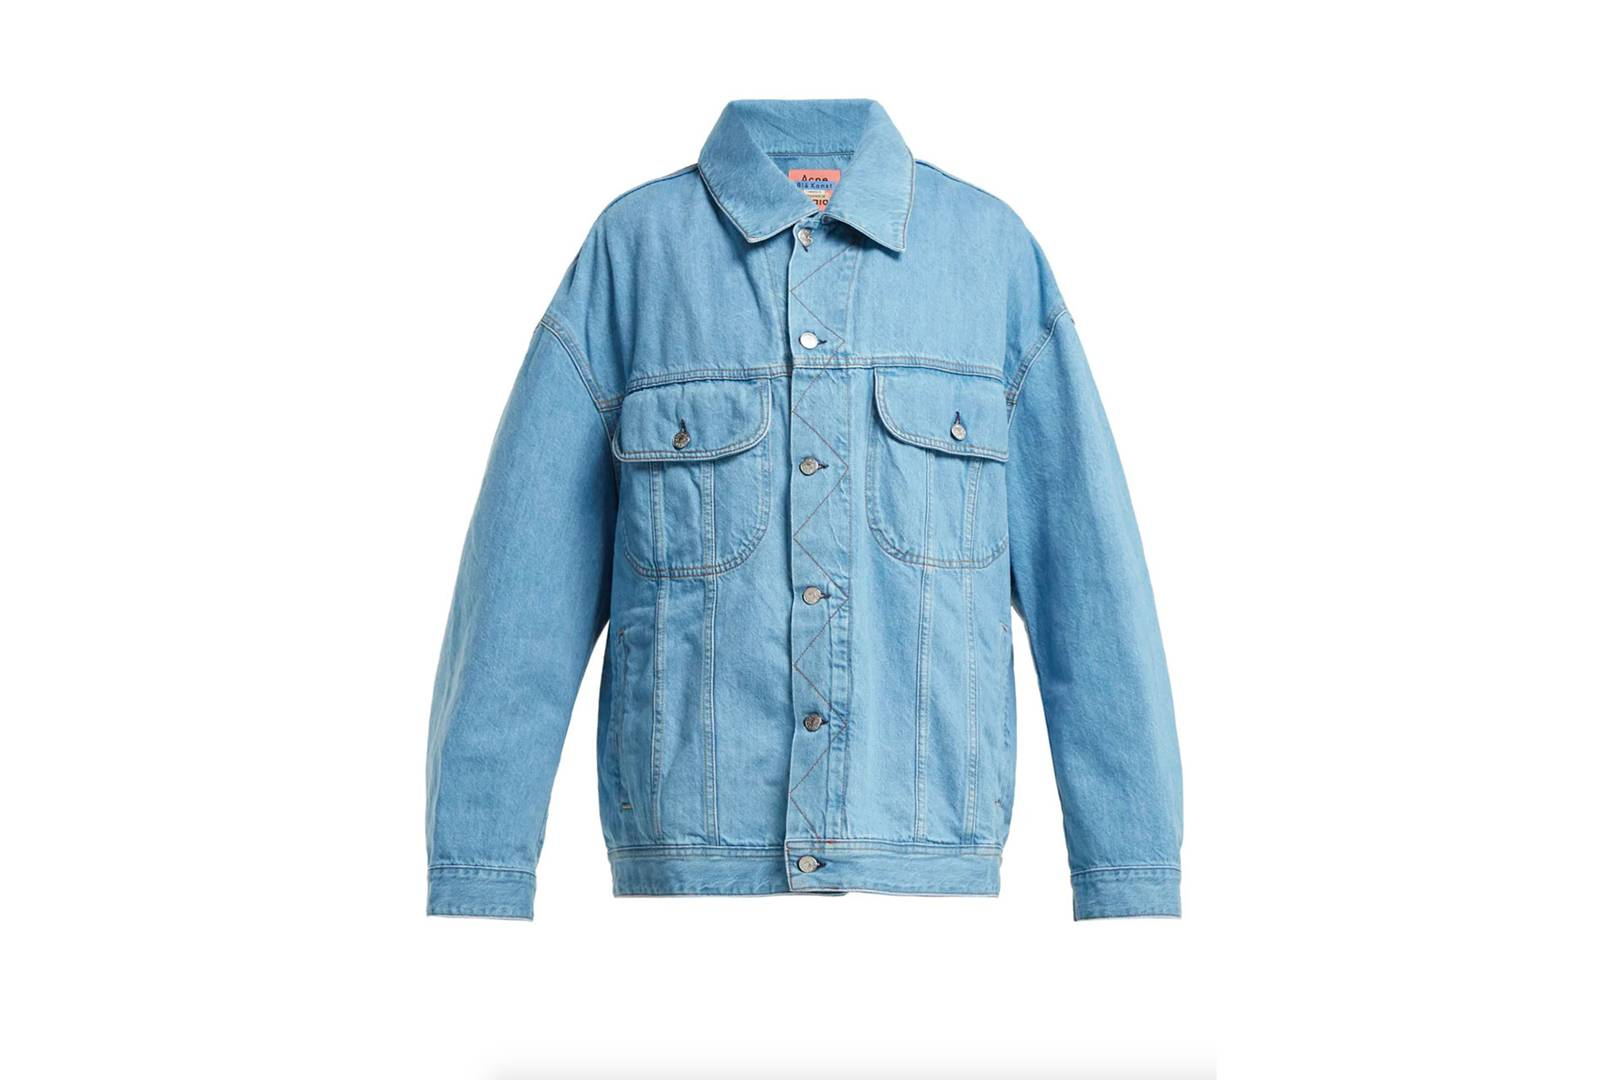 5104d1d20a The History Of Denim Jeans